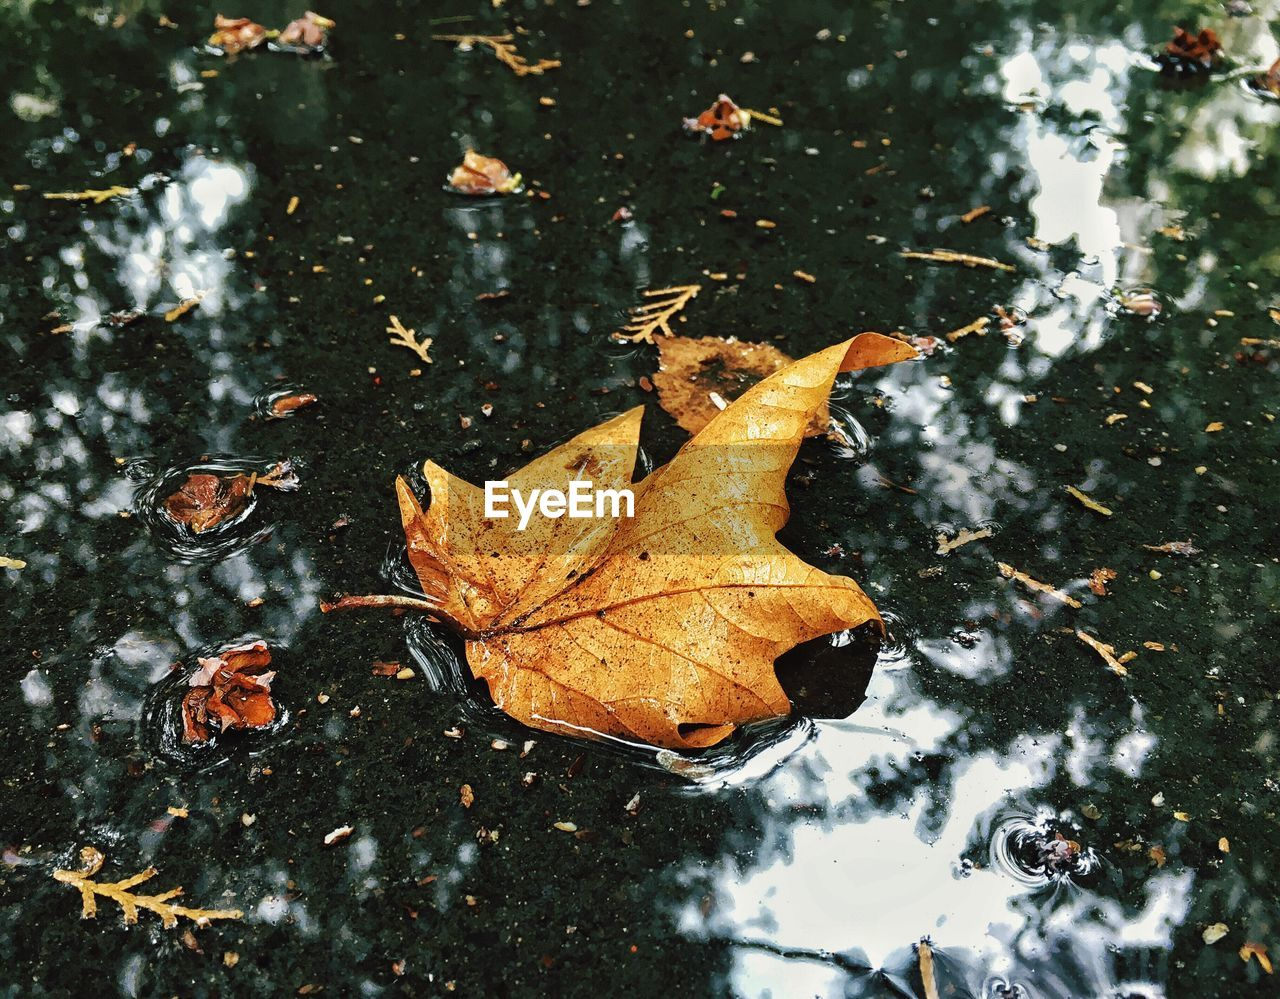 leaf, autumn, change, dry, nature, maple, day, selective focus, outdoors, weather, close-up, water, maple leaf, focus on foreground, beauty in nature, cold temperature, fragility, no people